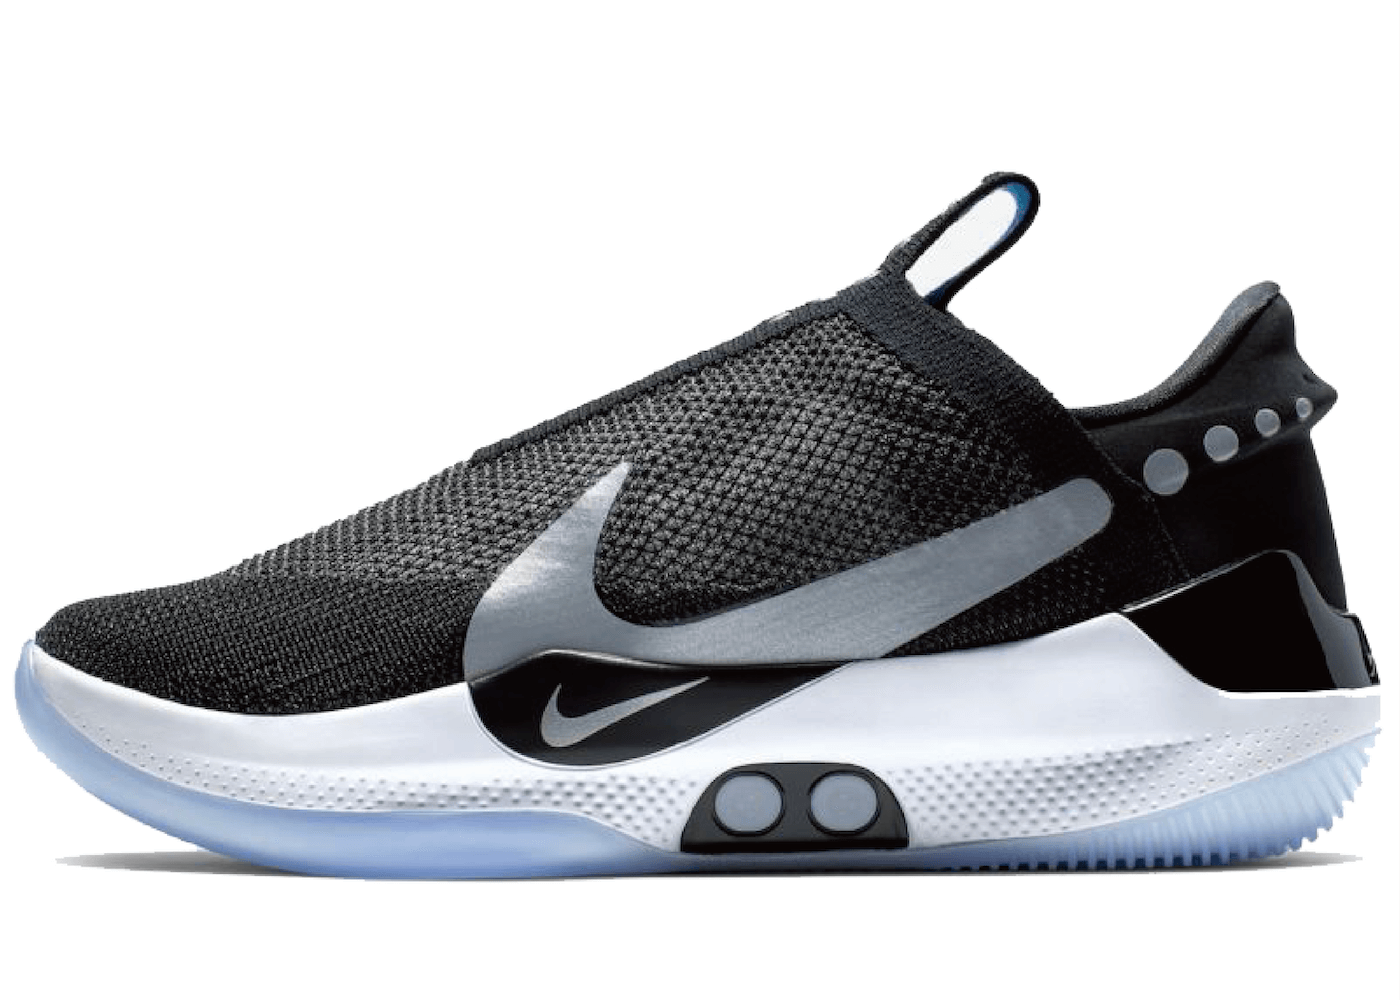 Nike Adapt BB Black Pure Platinumの写真